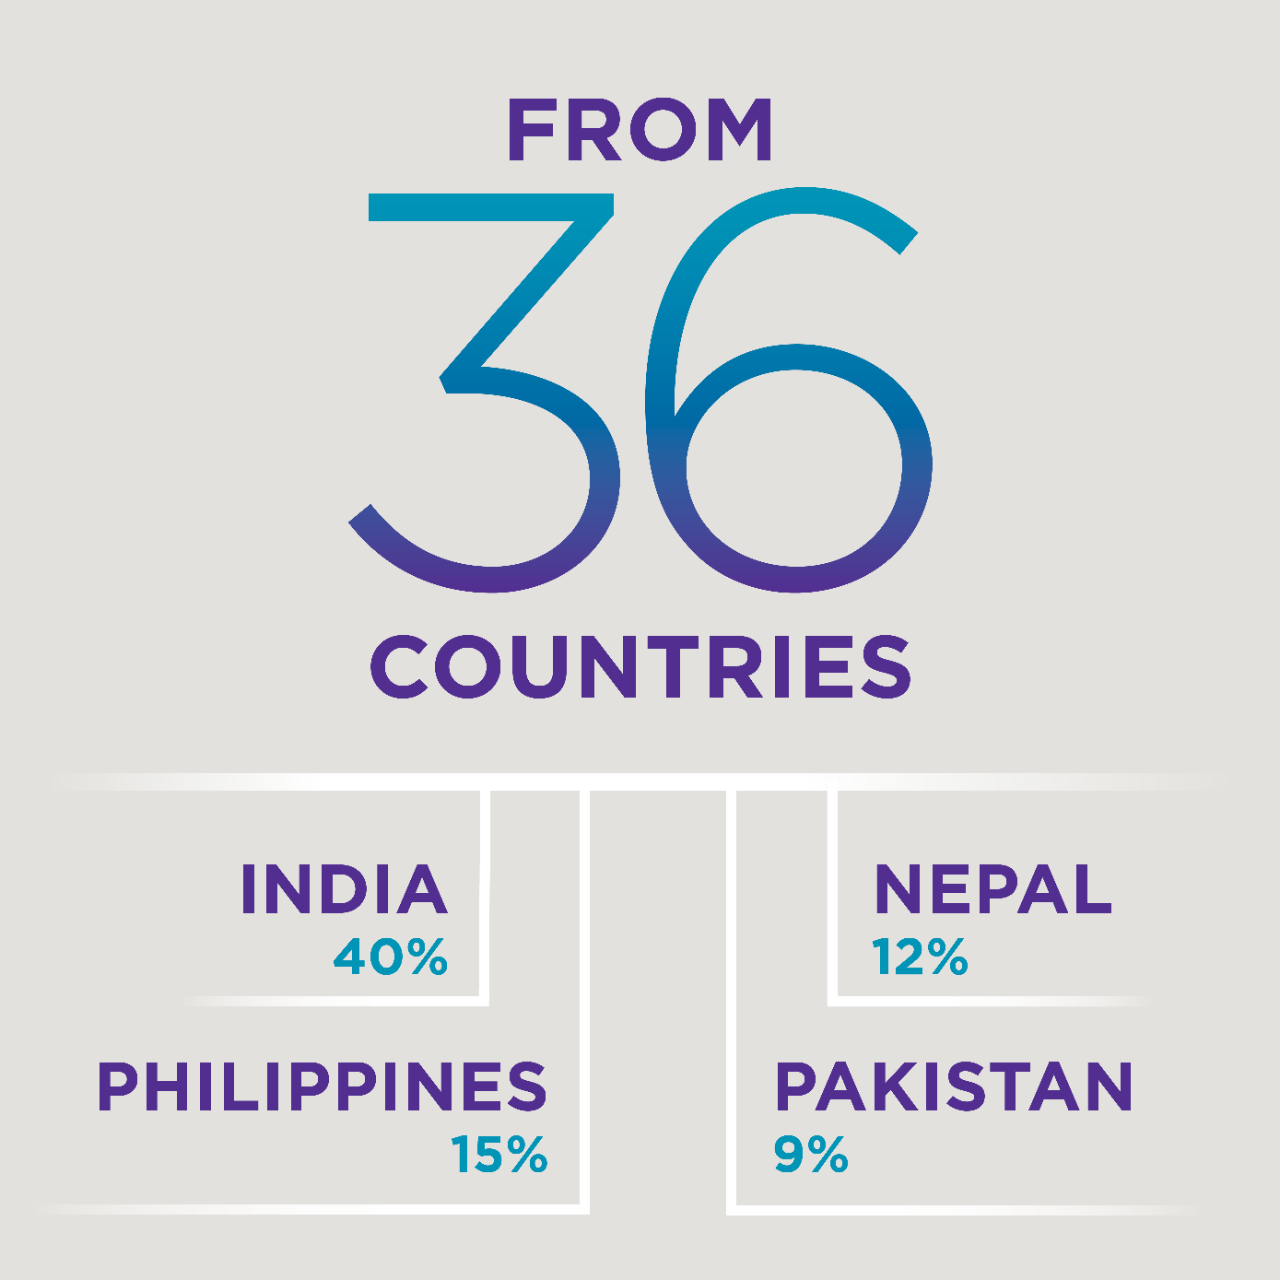 From 36 countries; India 40%, Philippines 15%, Nepal 12%, Pakistan 9%